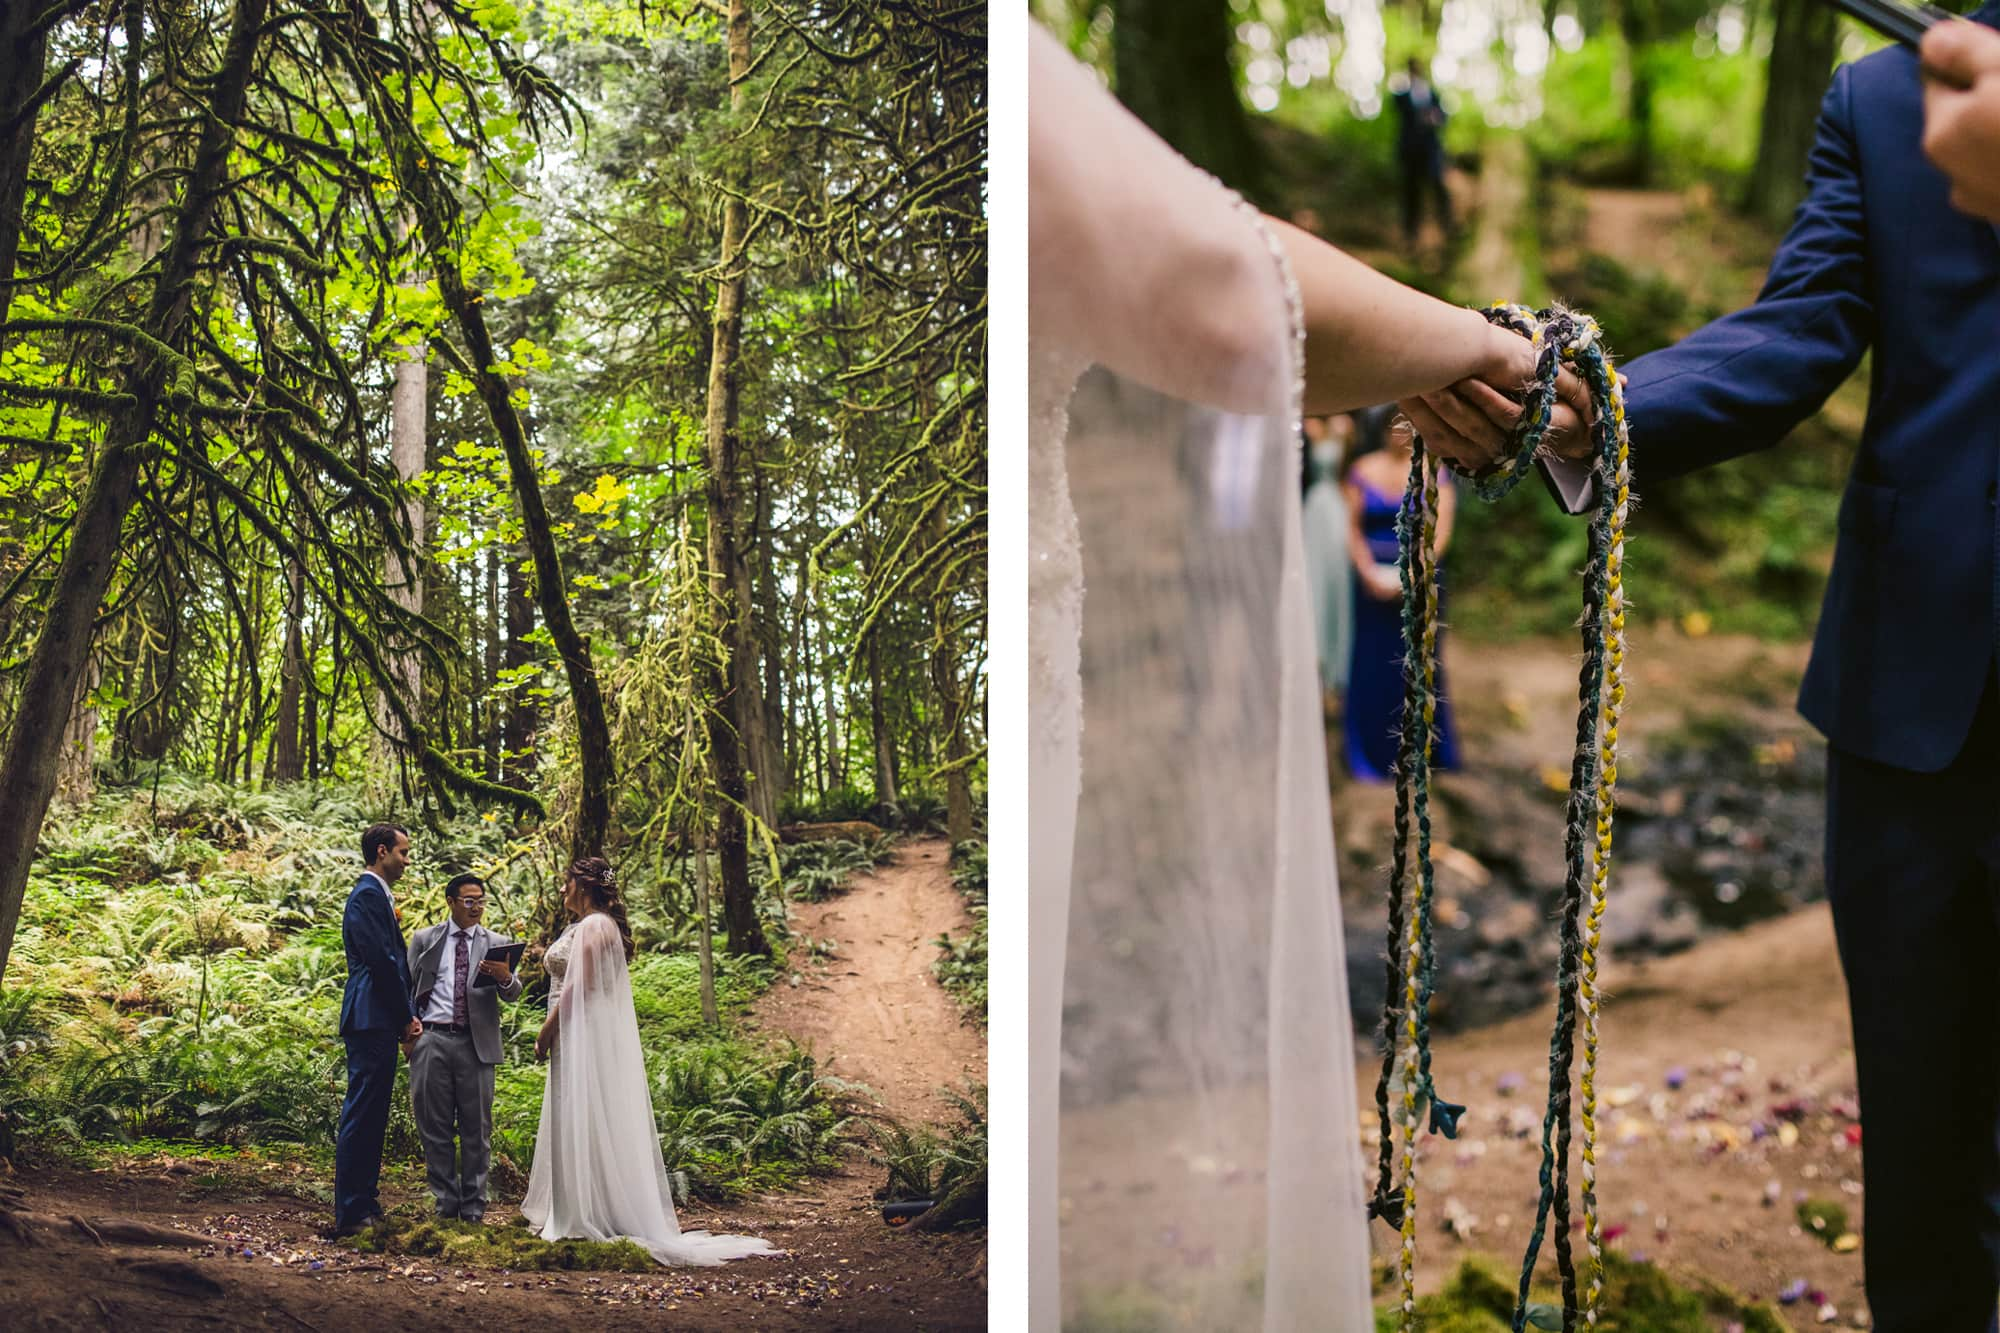 Marriage ceremony in the woods